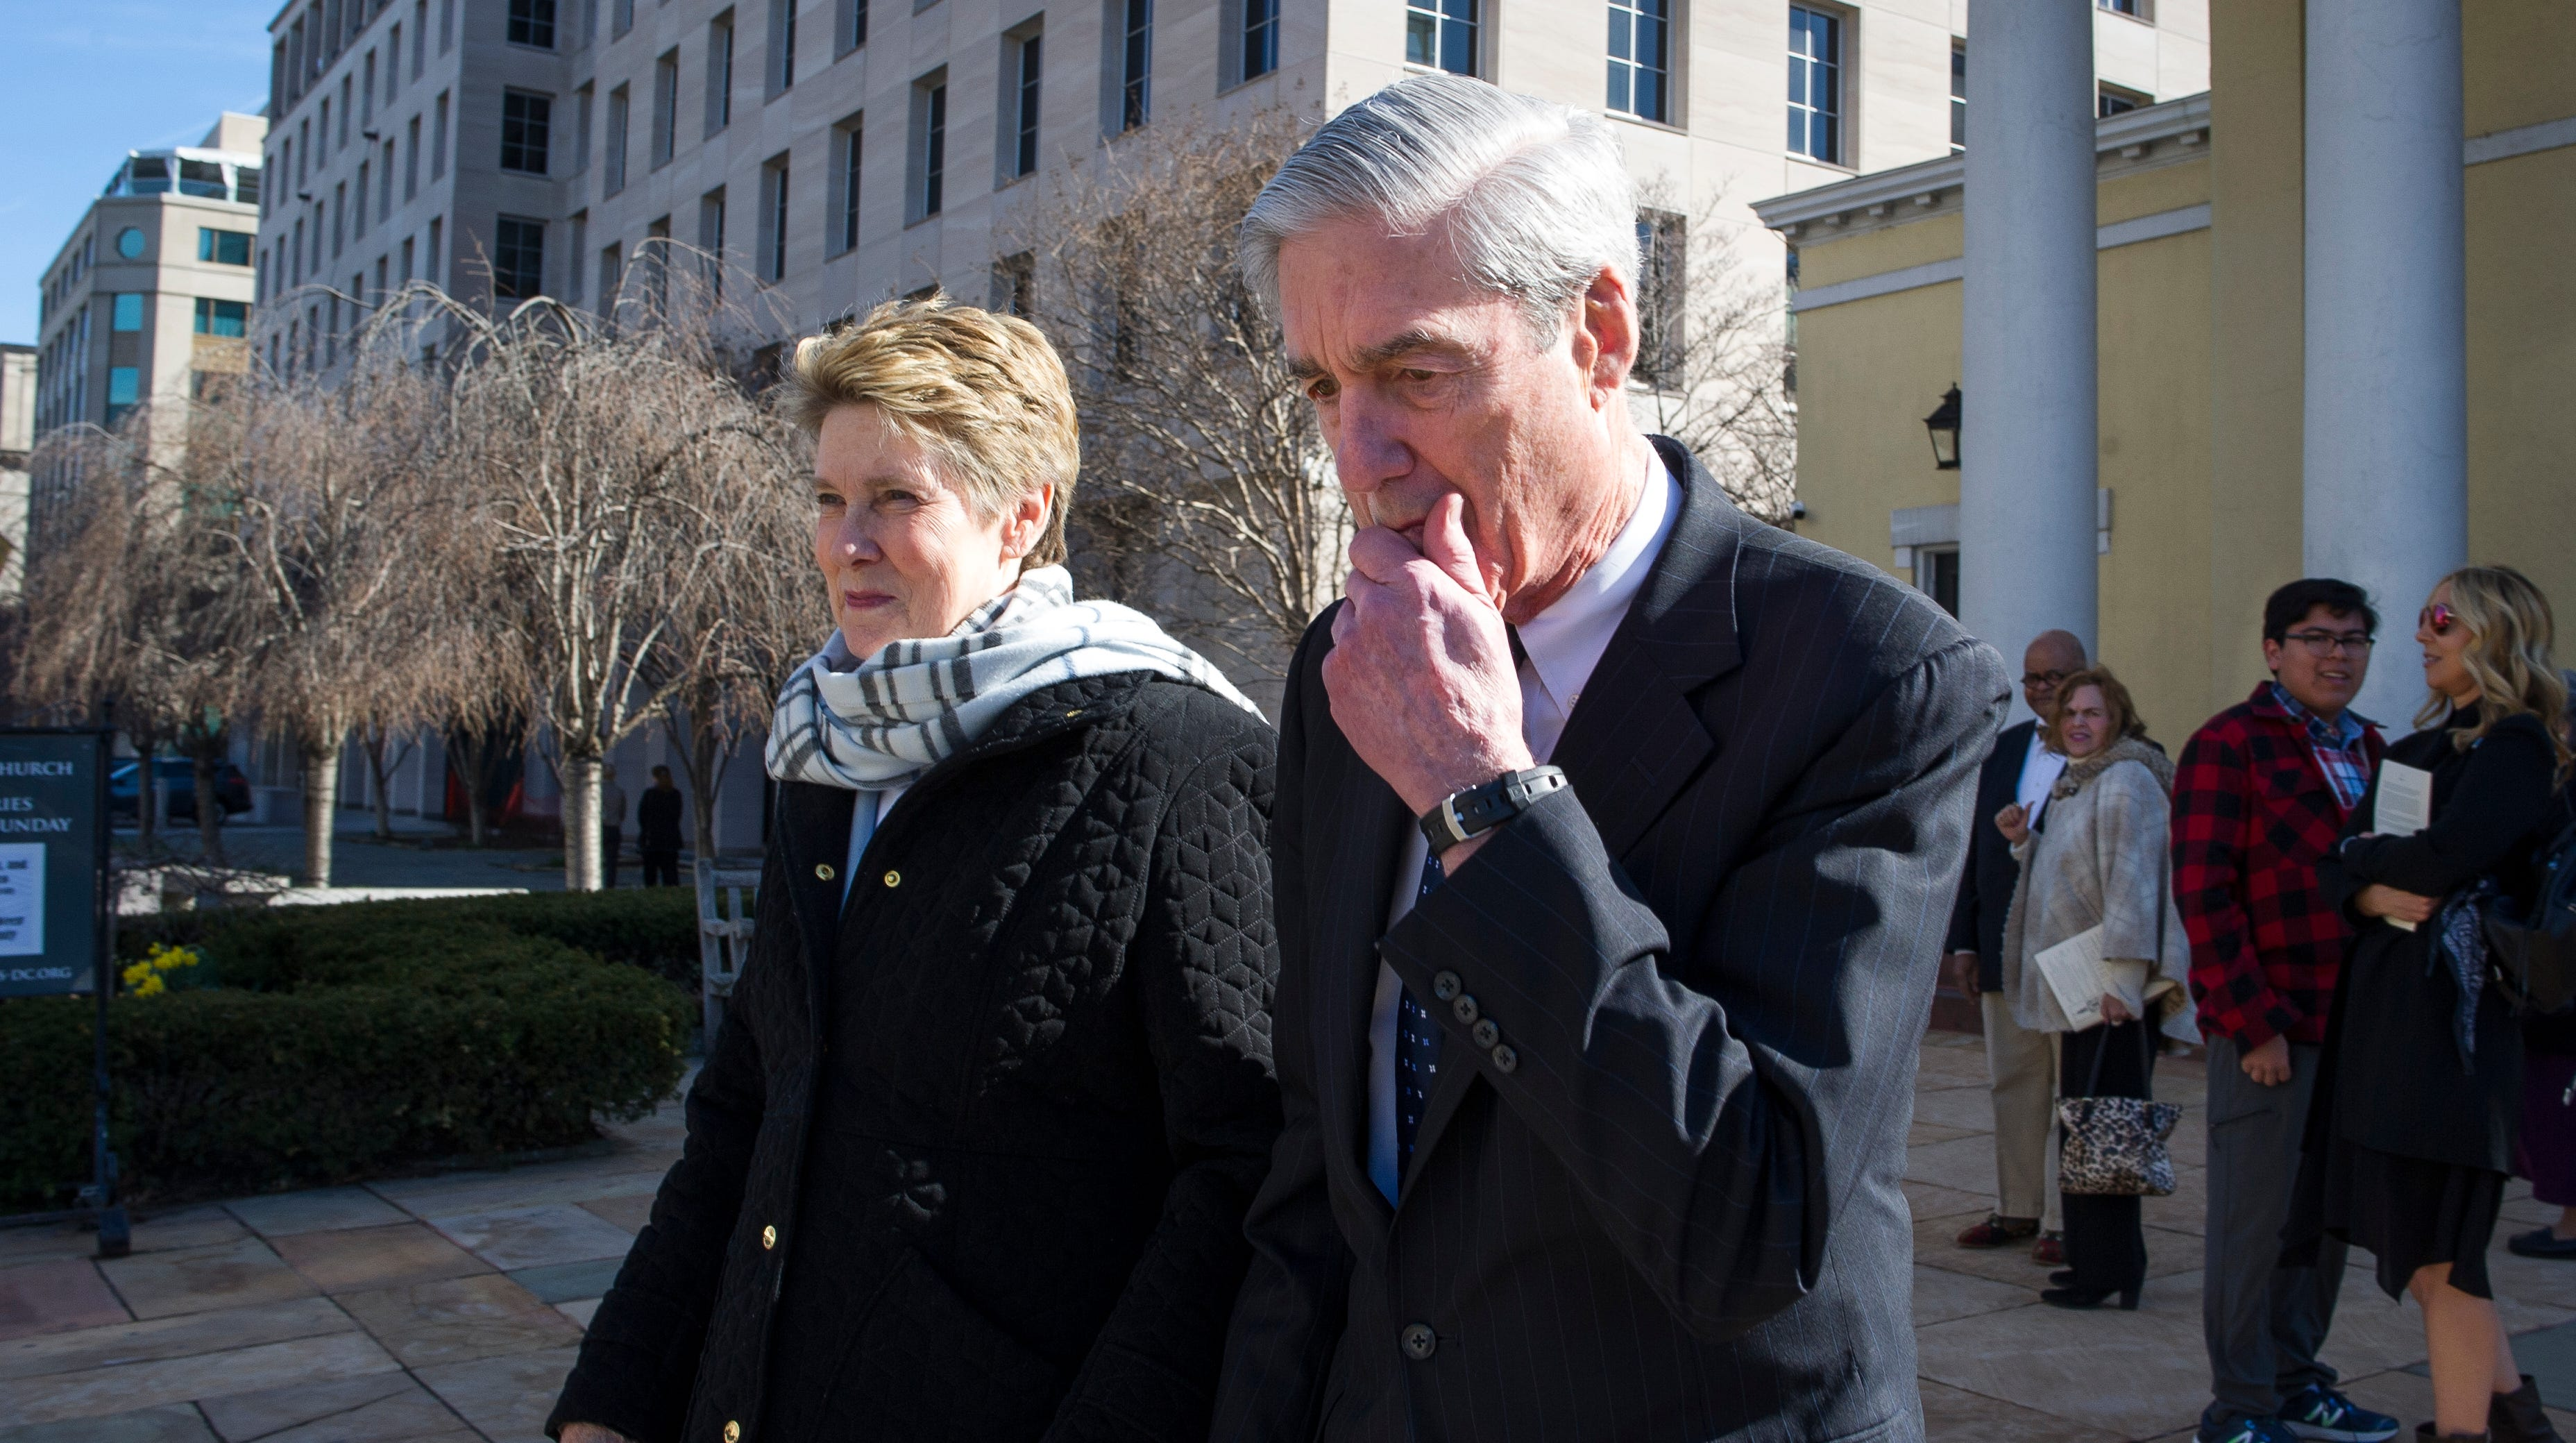 Special counsel Robert Mueller and his wife, Ann, at a church across from the White House on March 24, 2019.